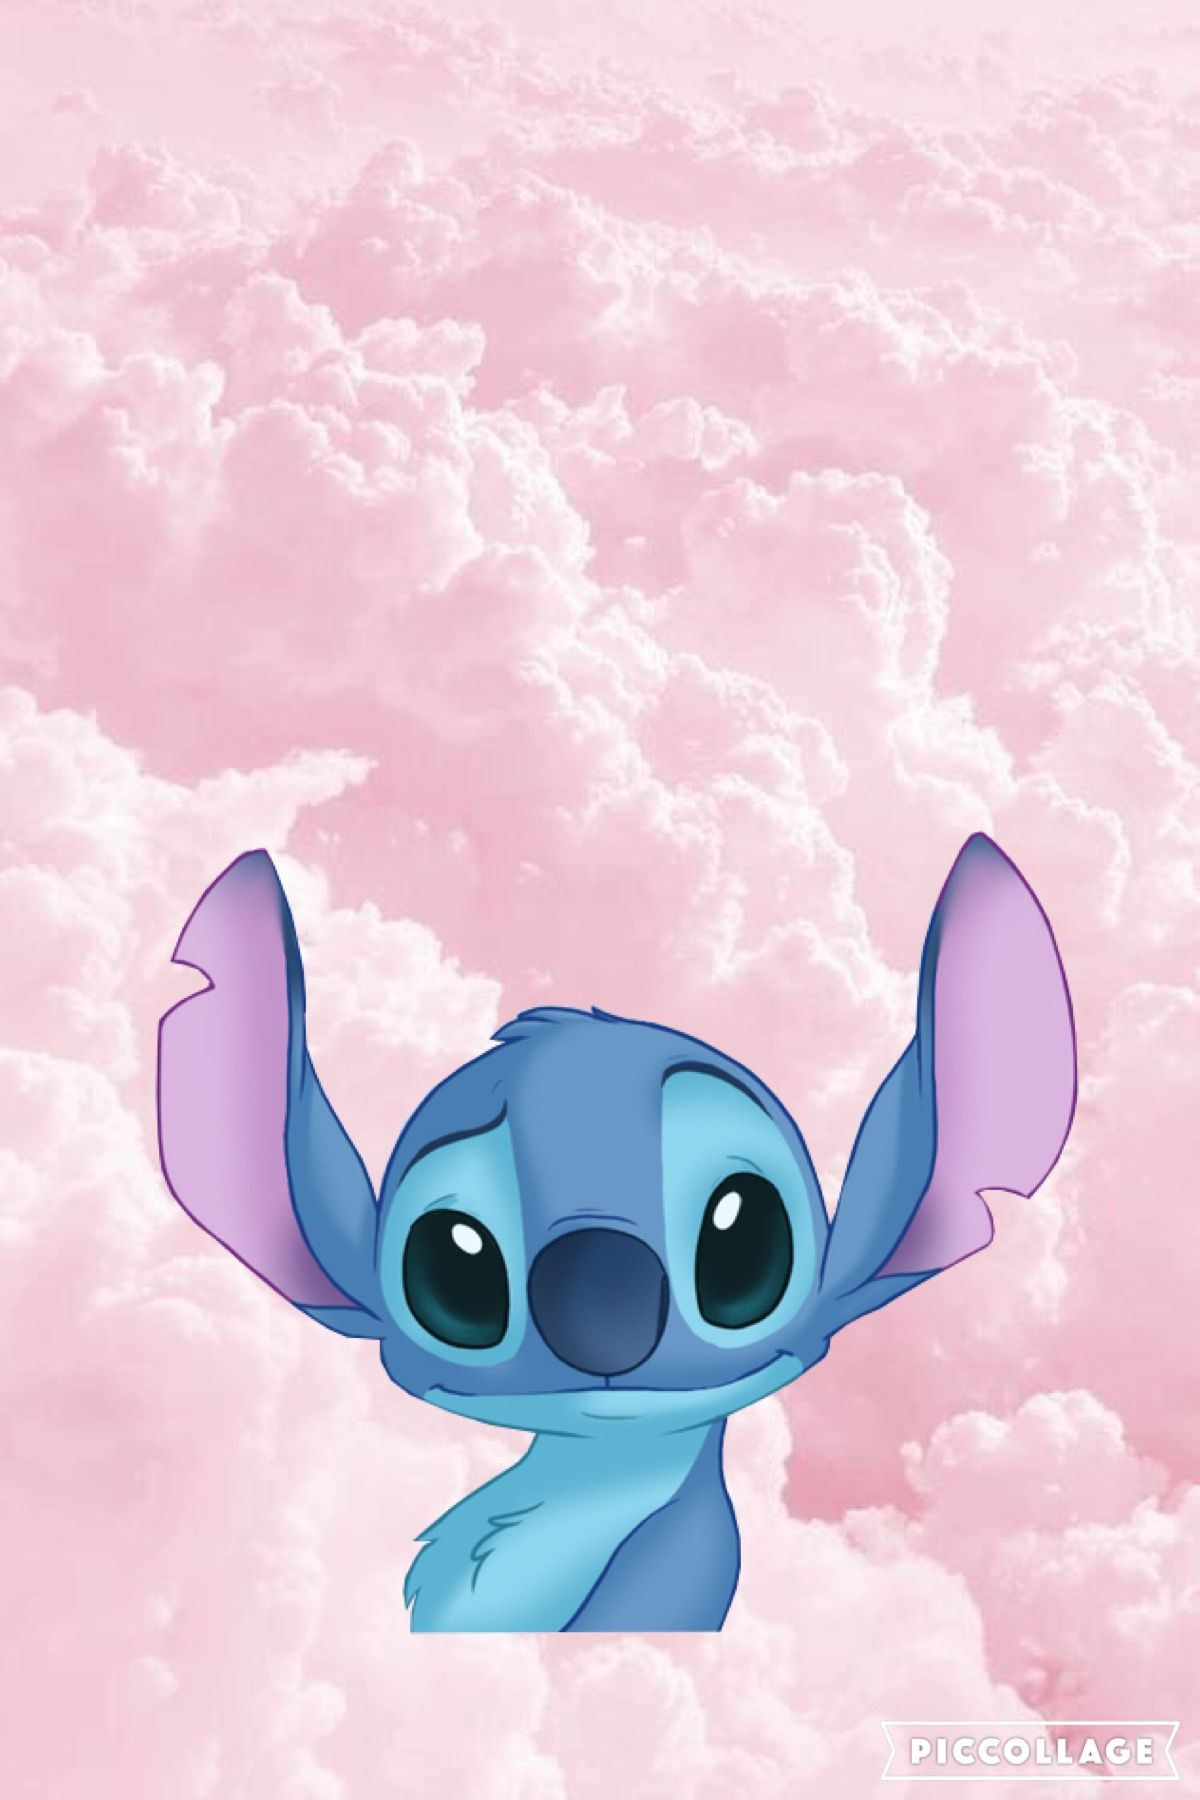 Pin By Online On Stitch Cute Cartoon Wallpapers Cute Disney